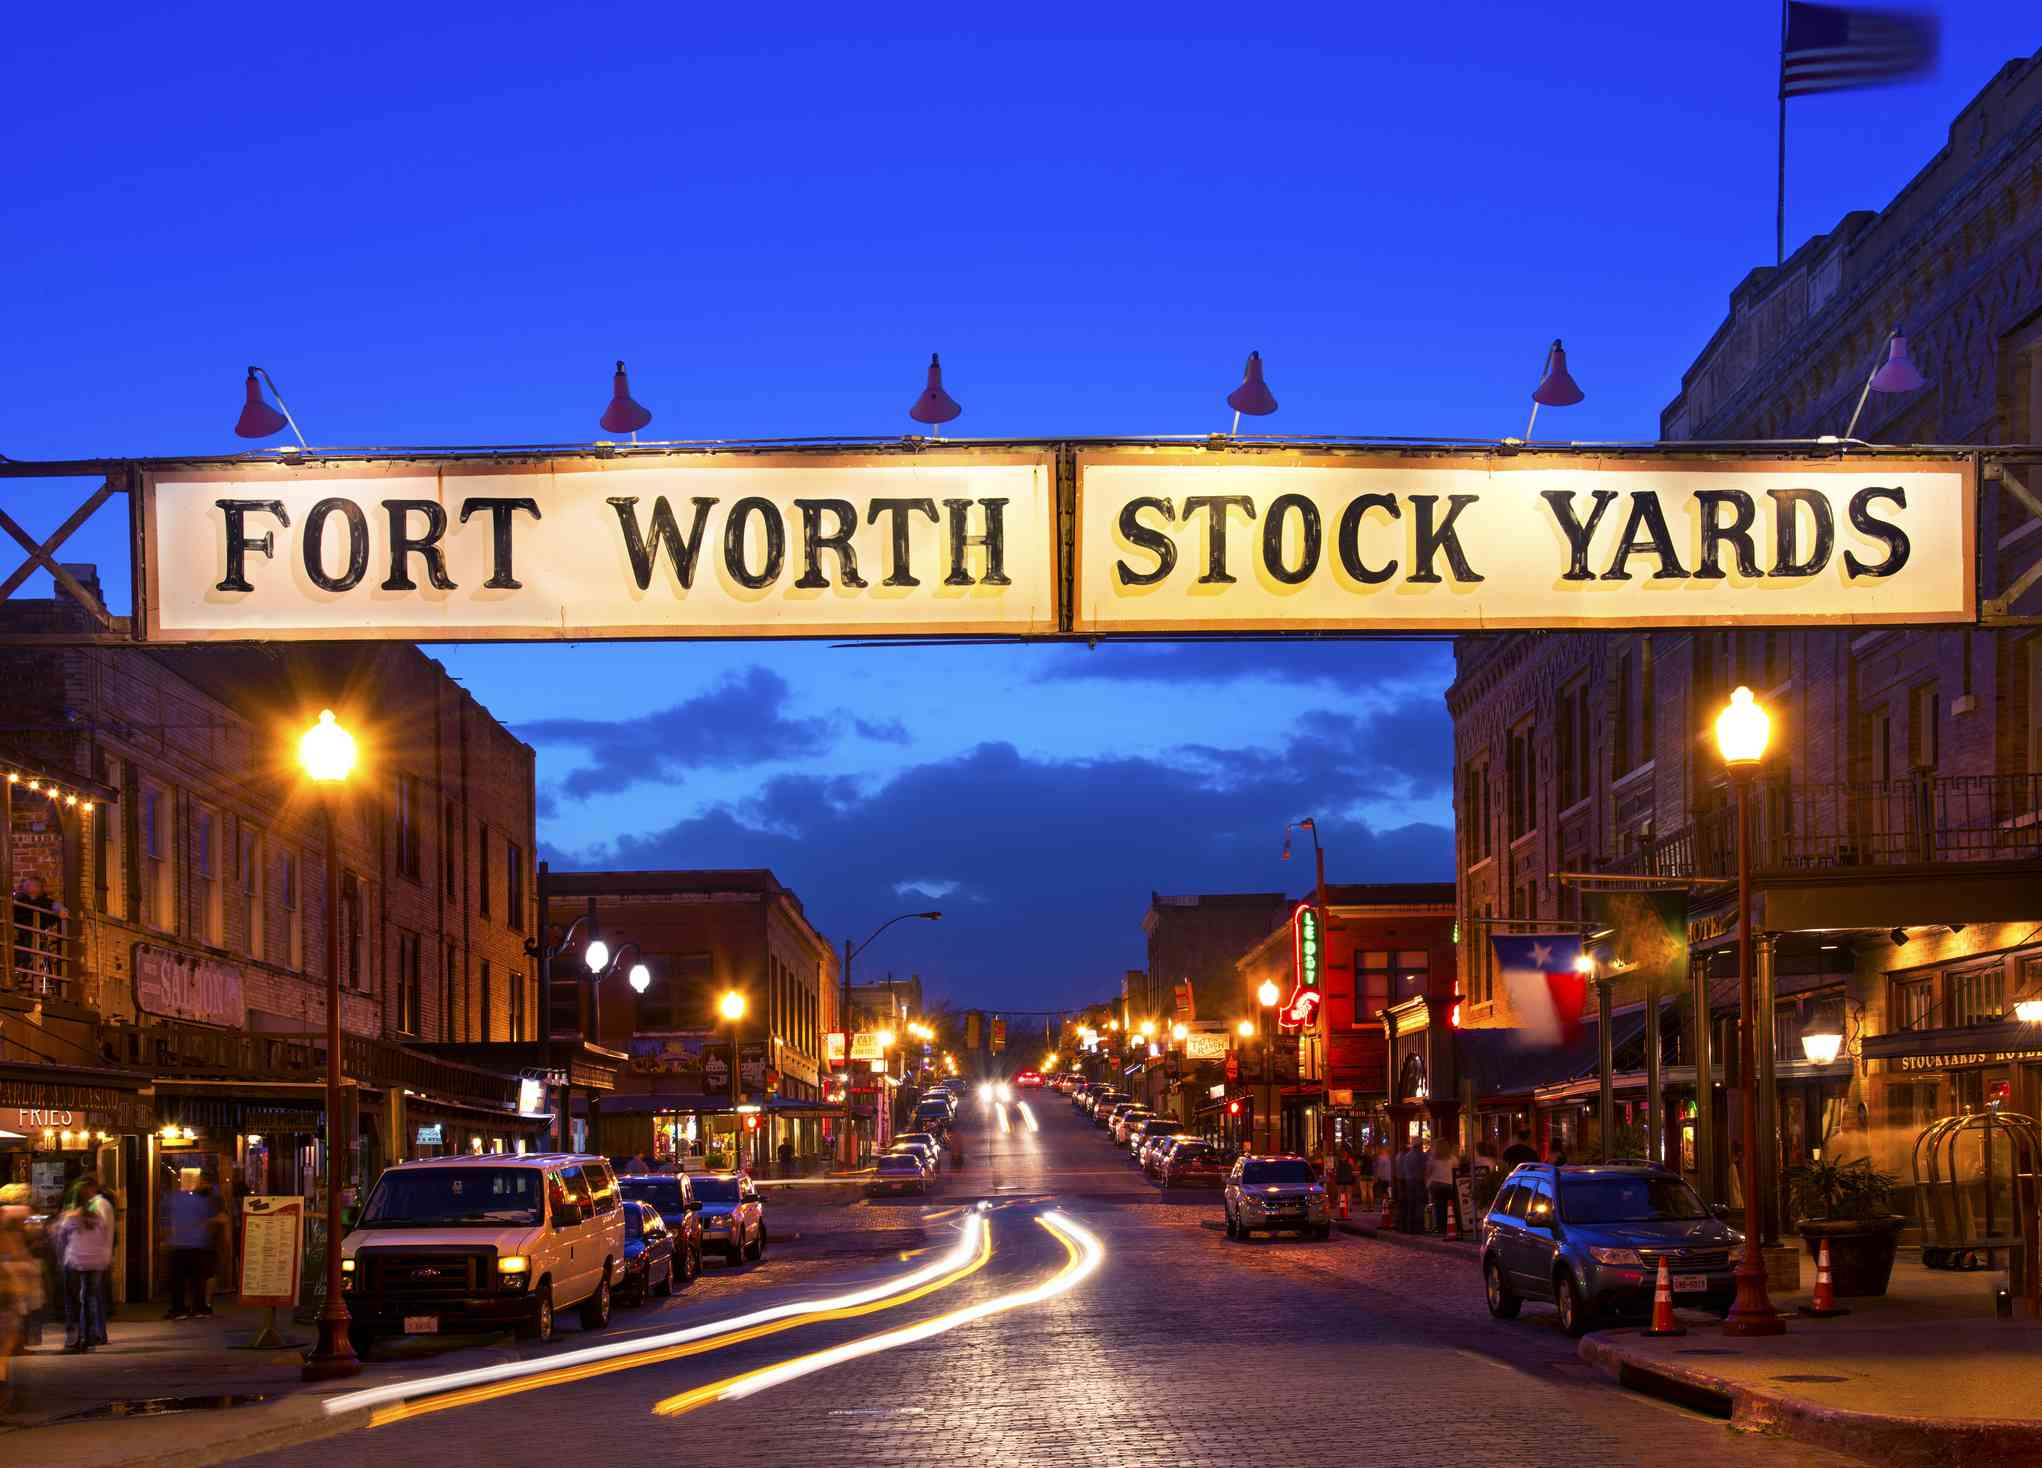 Fort Worth Stock Yards sign at twilight